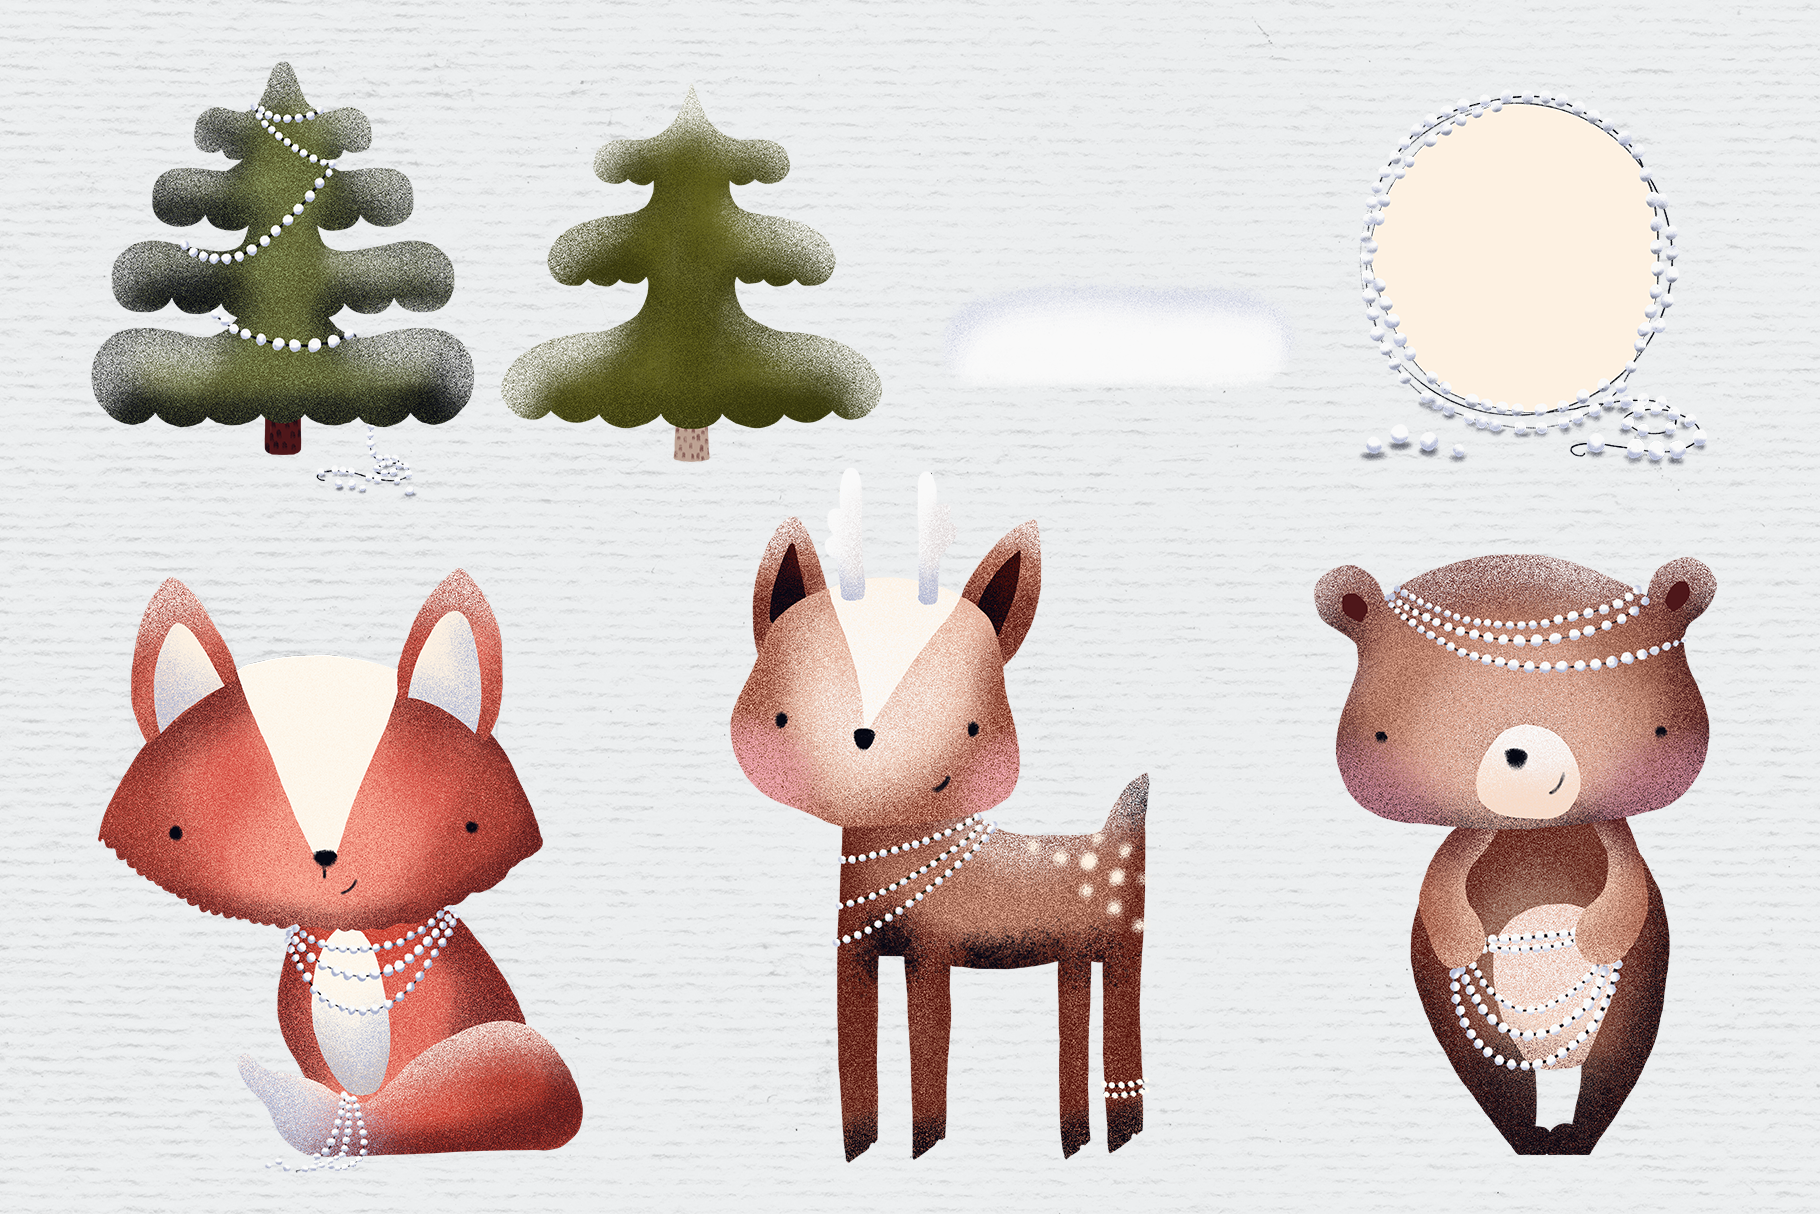 Woodland creatures clipart, winter clipart, animal clipart.